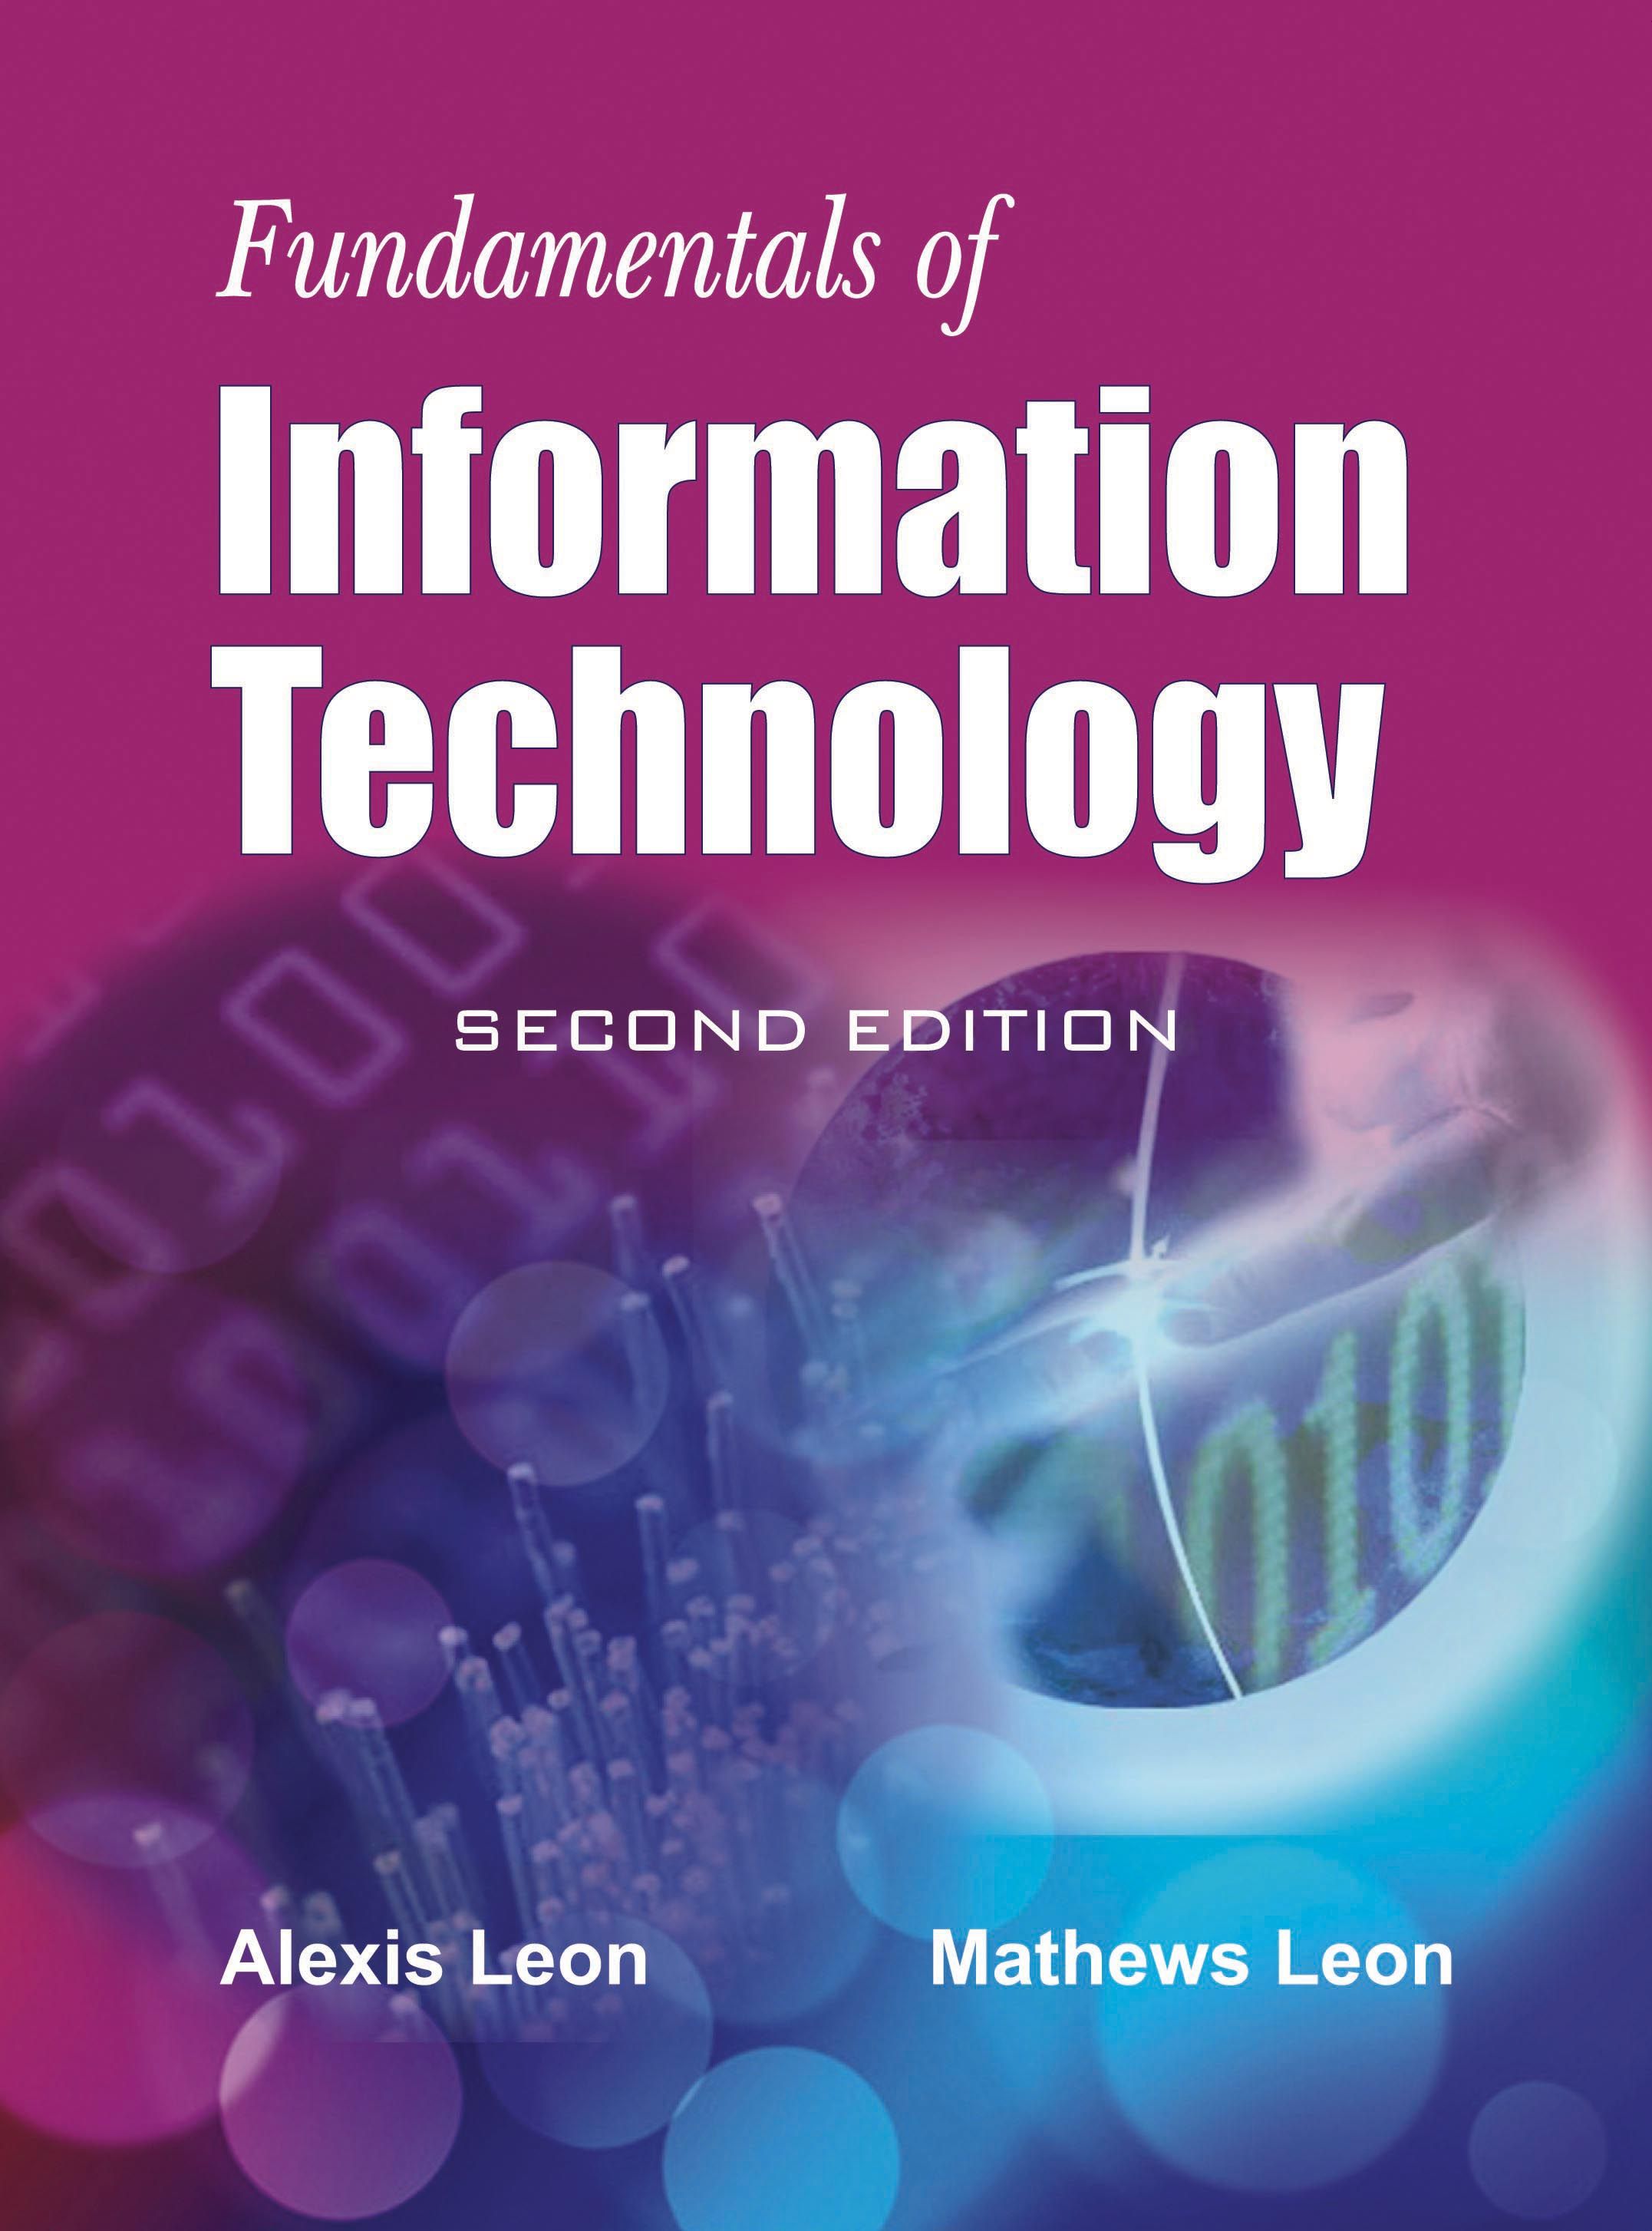 Fundamentals of Information Technology, 2/e  by Alexis Leon